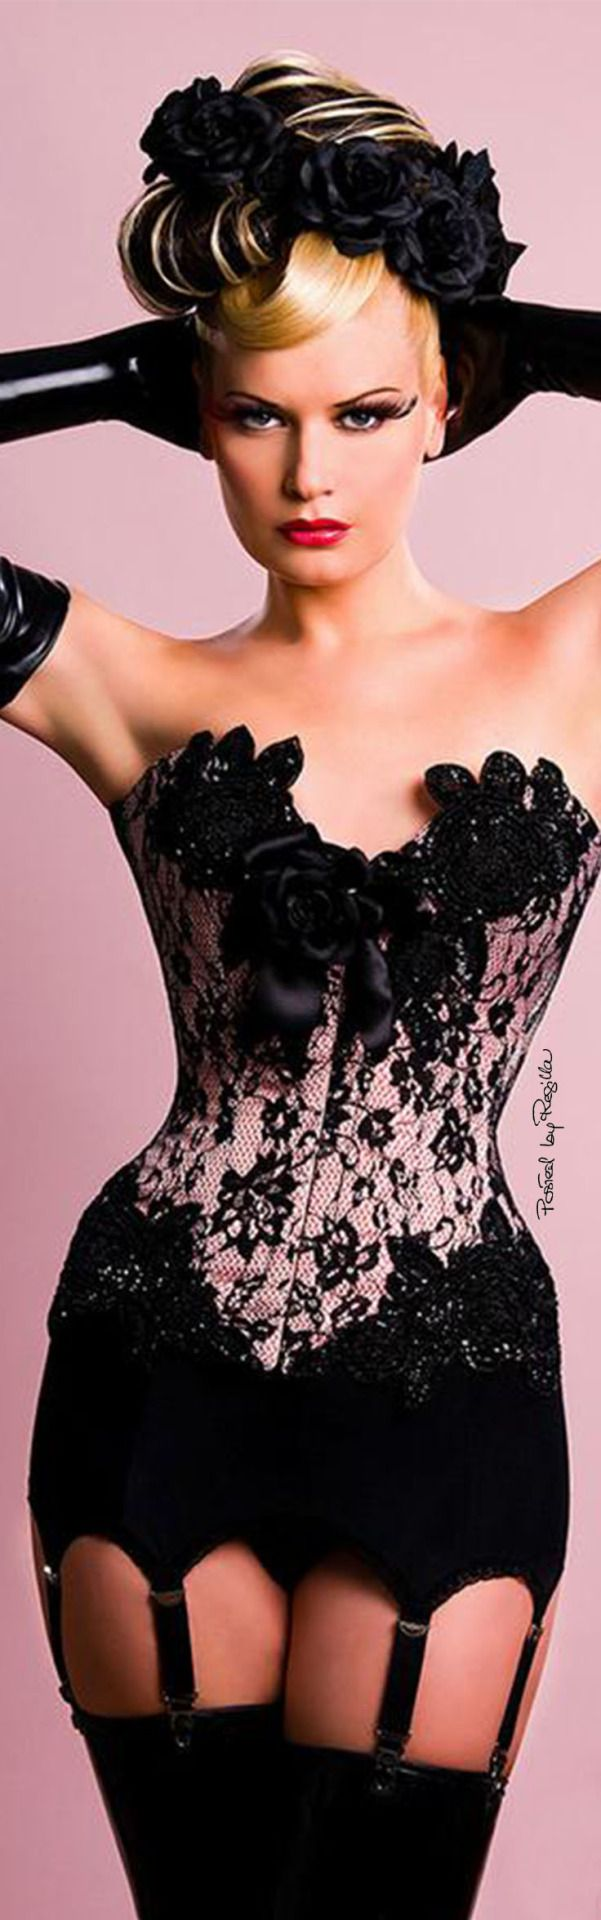 399 best images about **~CORSETS , PASTIES AND BUSTIERS ...